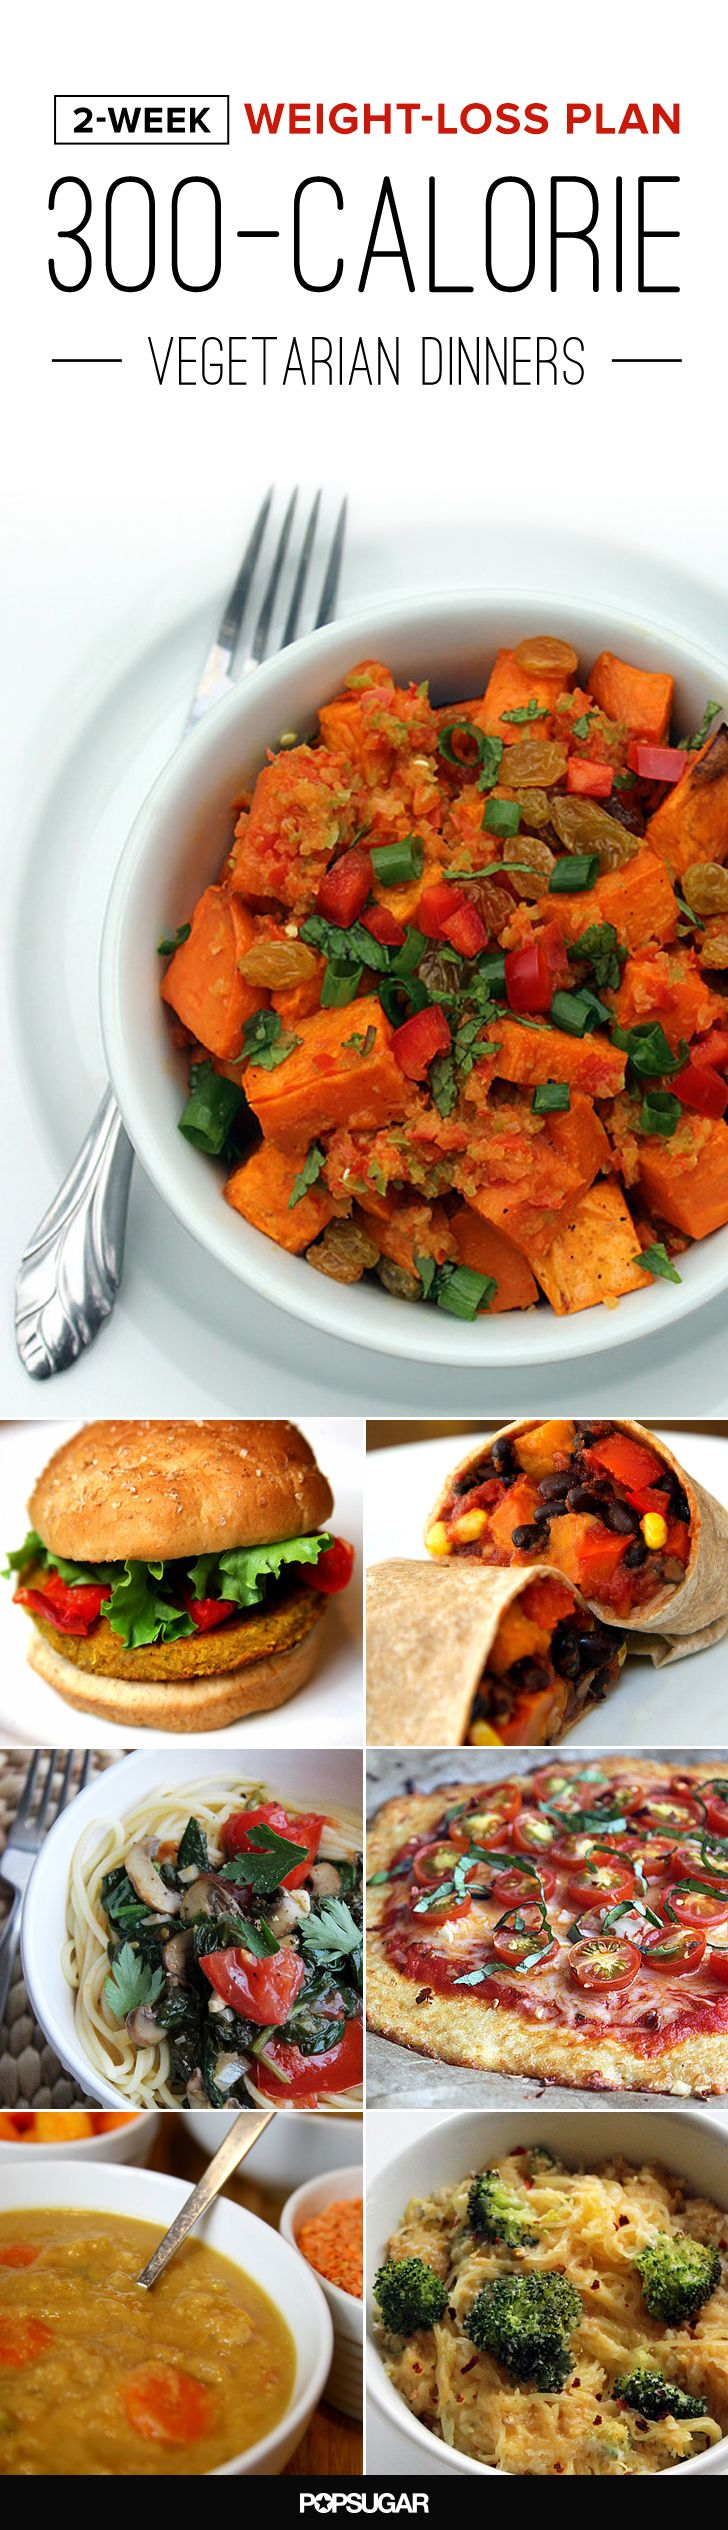 2 Week Meal Plan Vegetarian Dinners Under 300 Calories